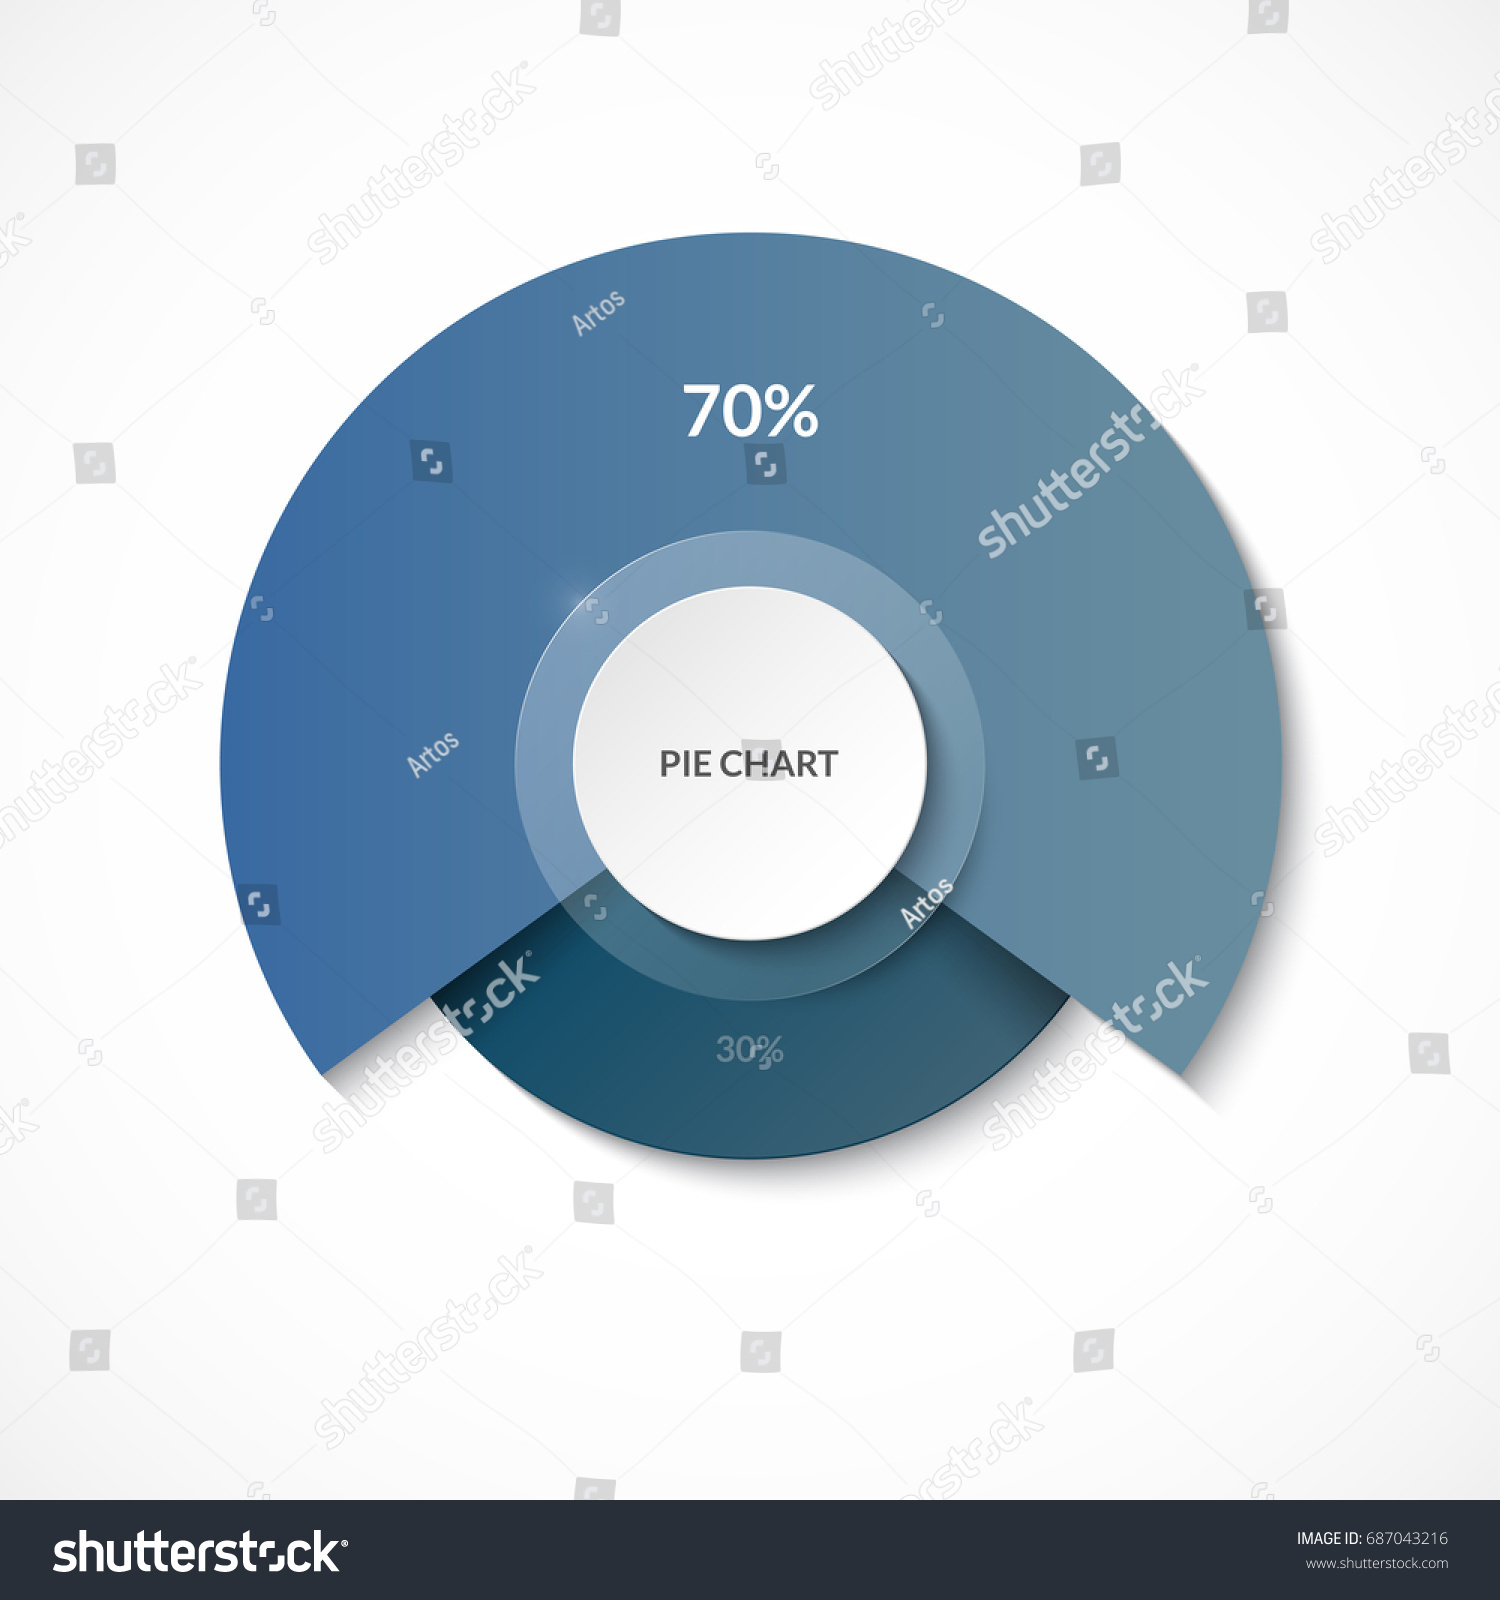 Pie chart share 70 30 circle stock vector 687043216 shutterstock pie chart share of 70 and 30 circle diagram for infographics nvjuhfo Choice Image